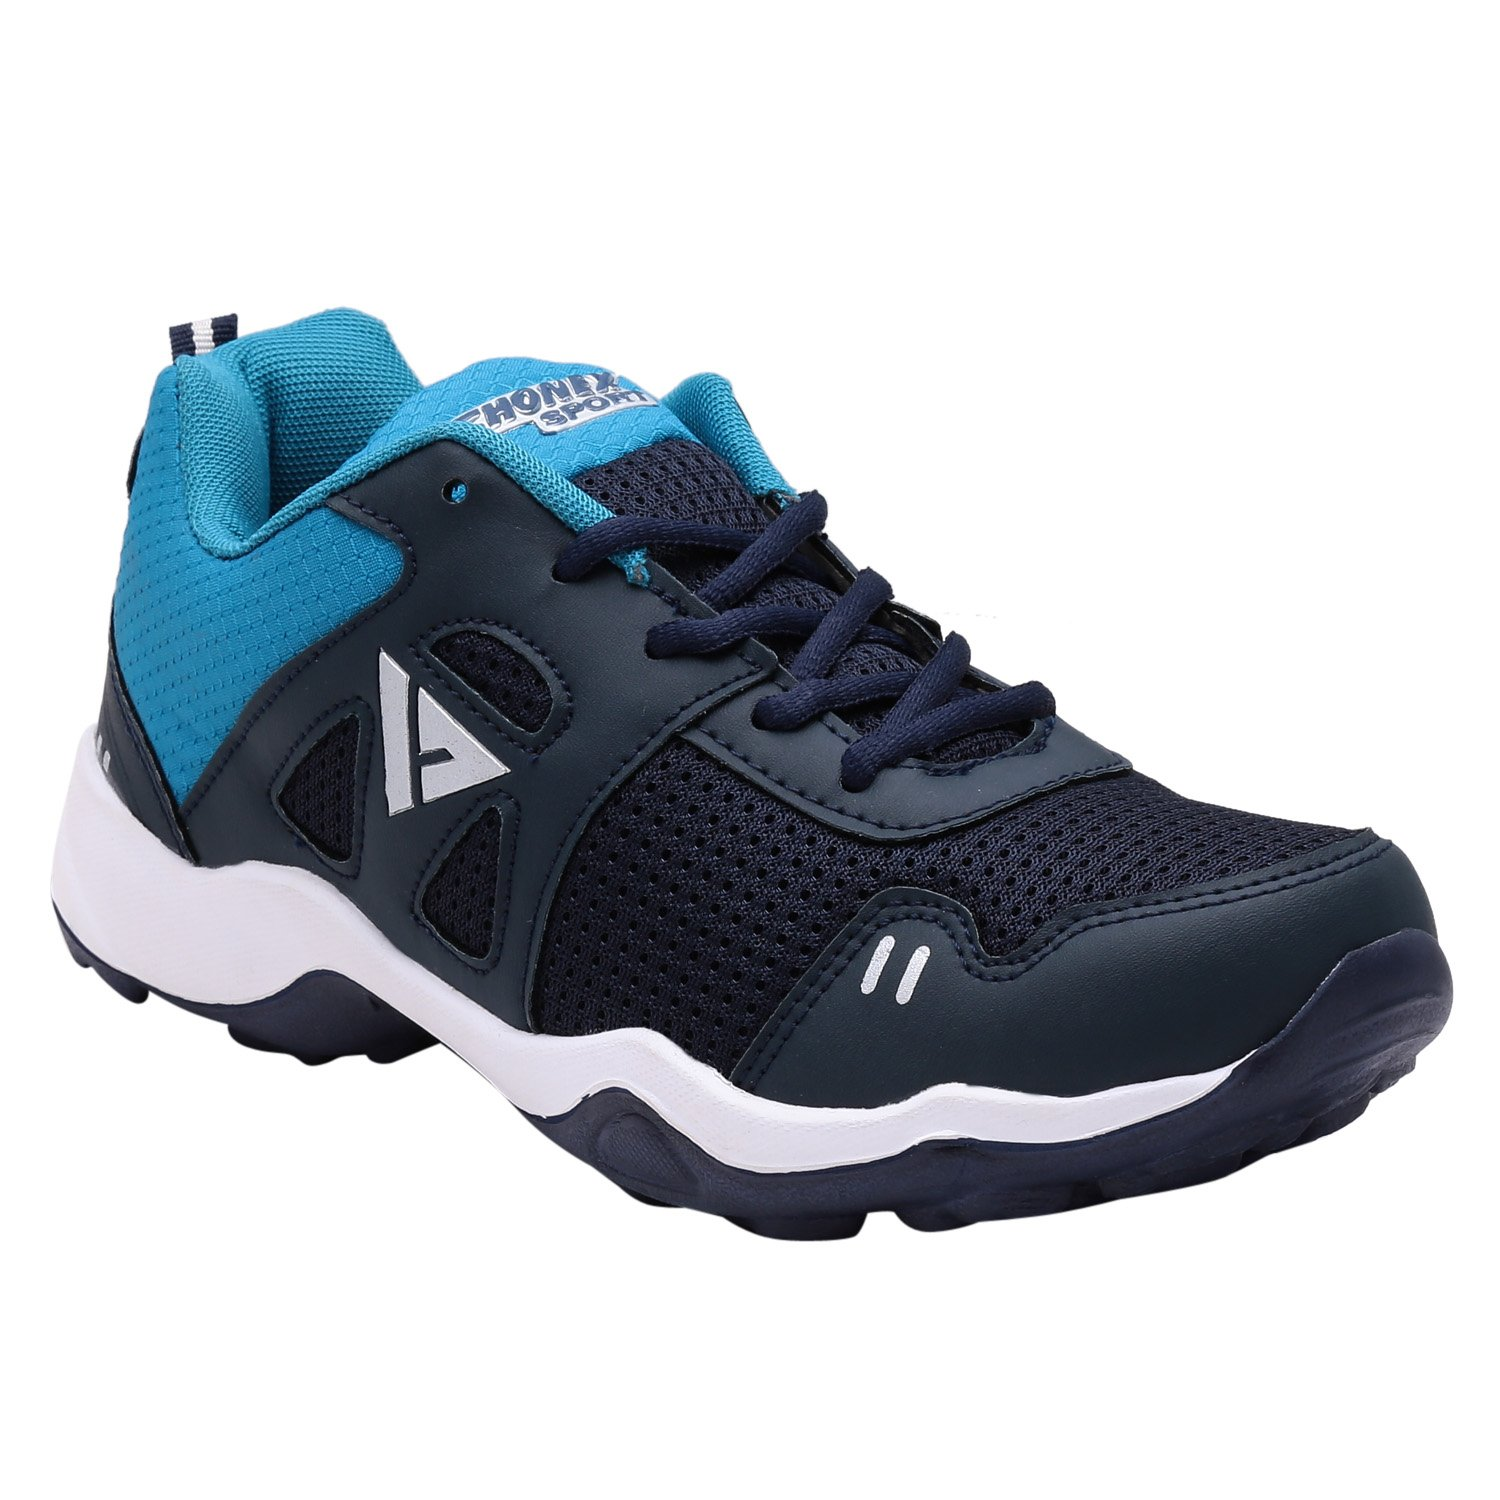 fhonex Sport 7 Navy Blue Lace Up Running Shoes  Amazon.in  Shoes   Handbags 13a06c89e91